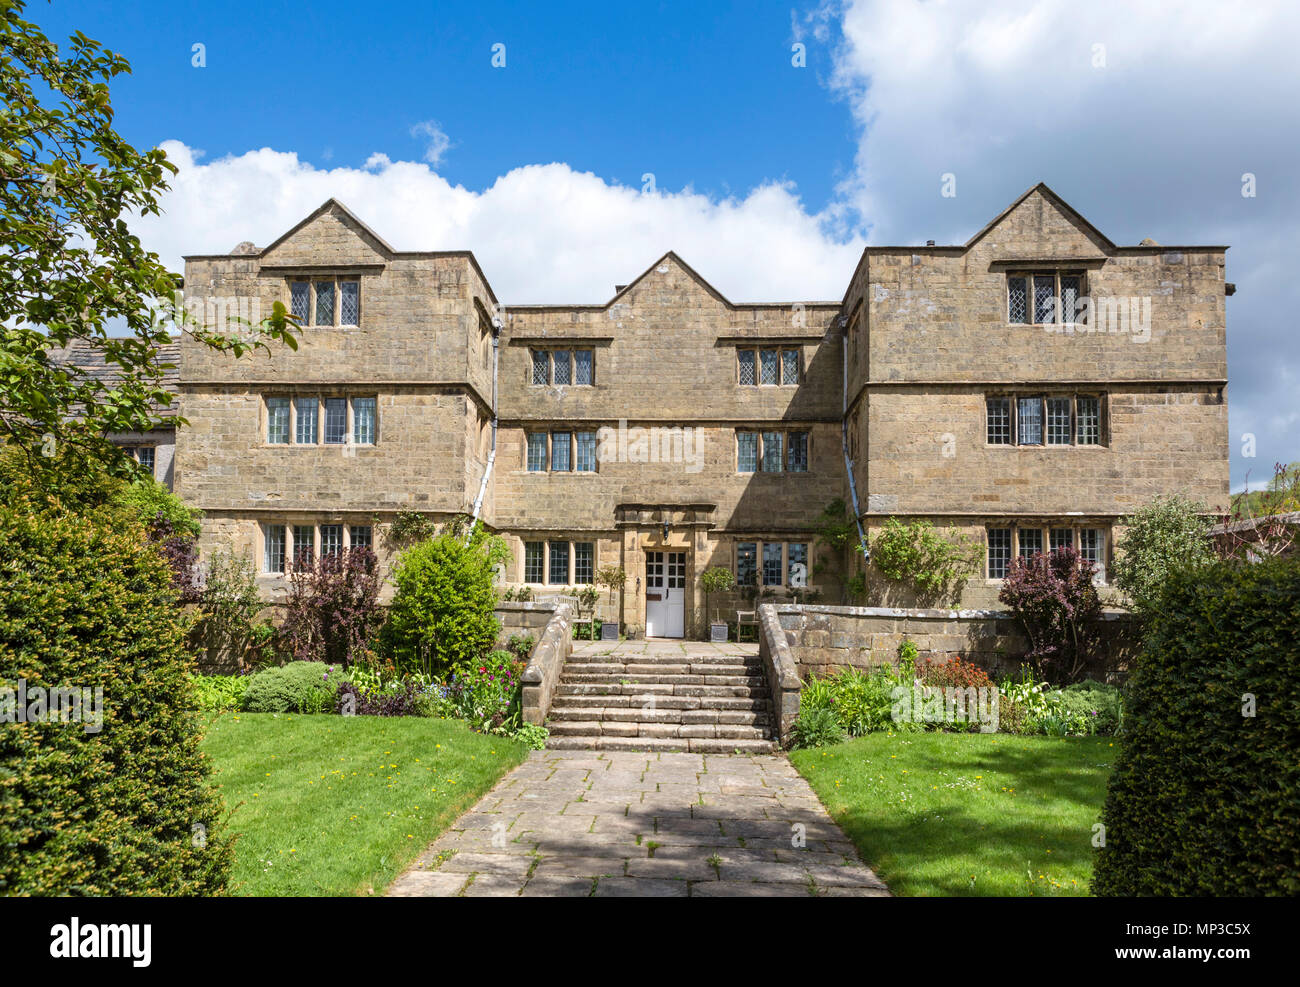 Eyam Hall, Eyam, Peak District, Derbyshire, England, UK. Eyam is sometimes referred to as the Plague Village. - Stock Image